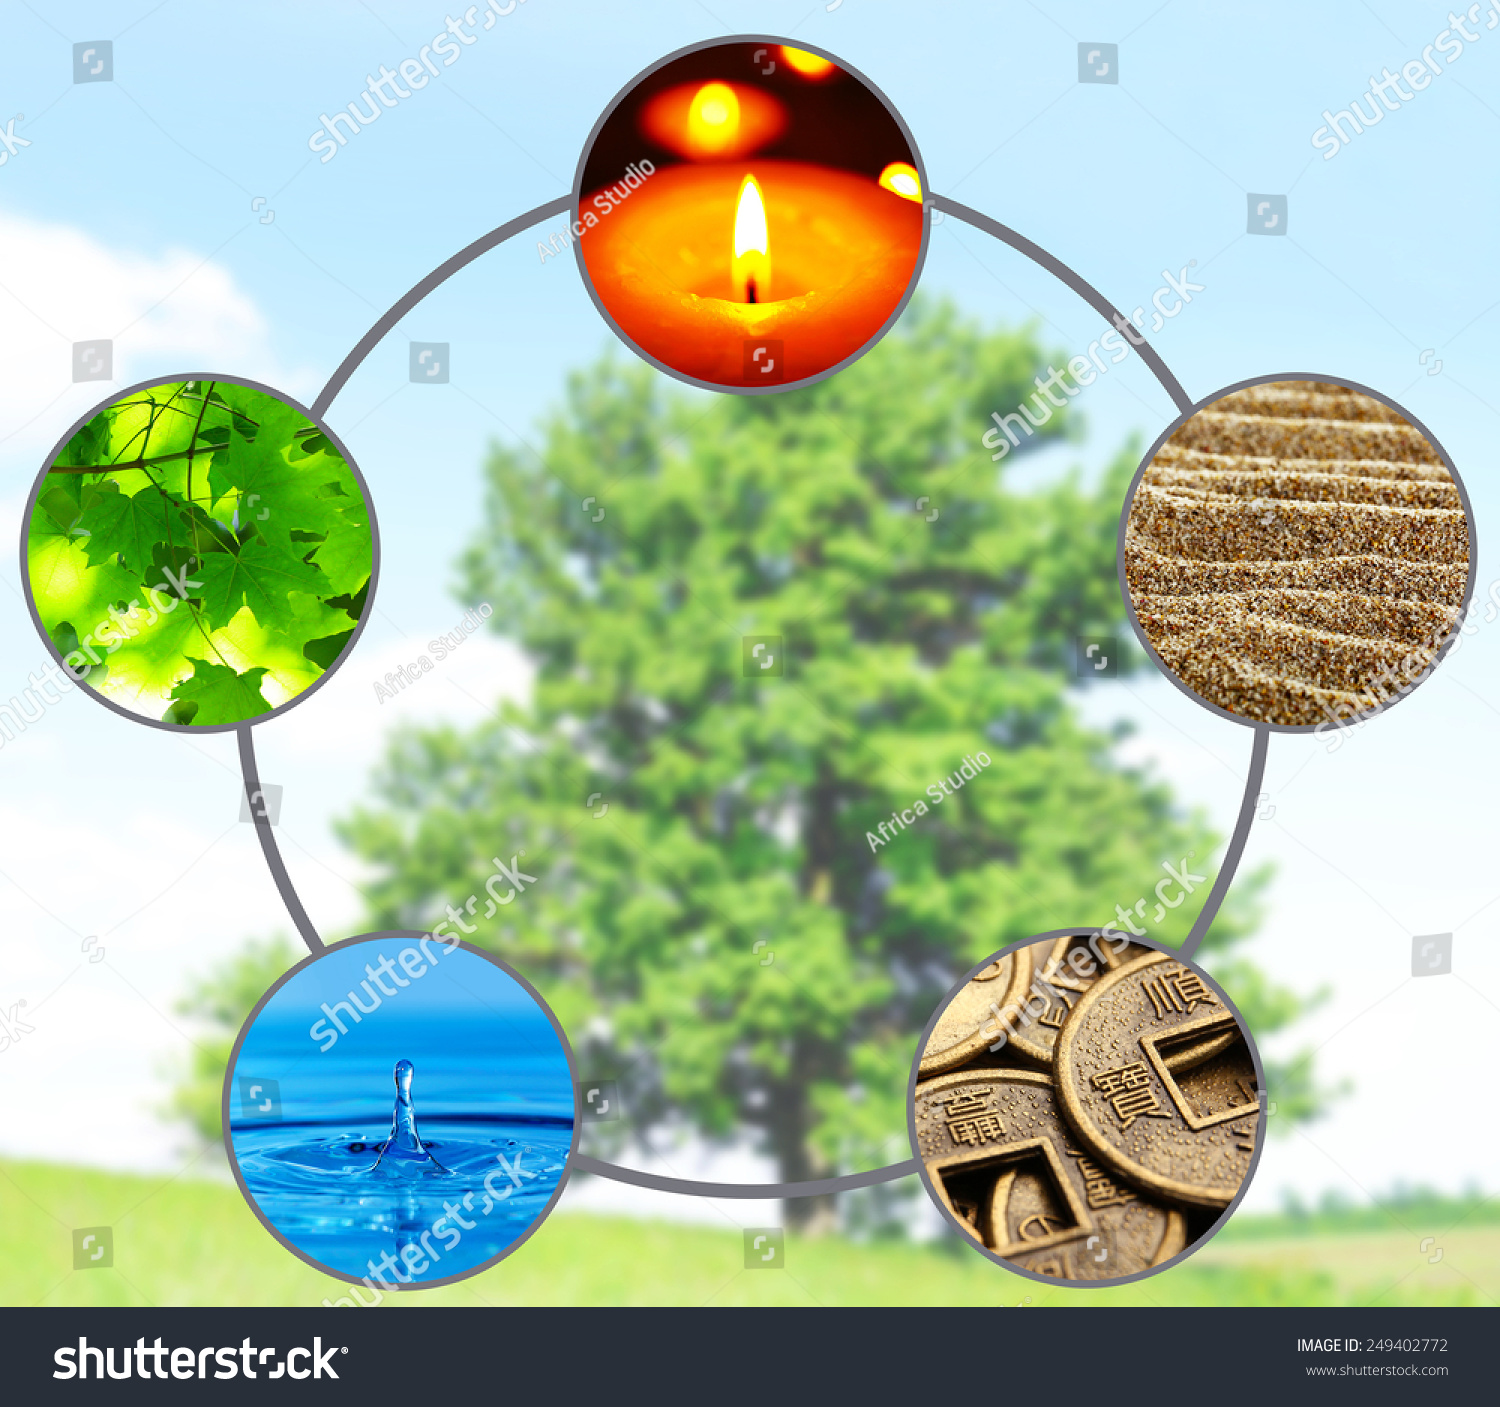 Collage Feng Shui Concepts Collage Of Feng Shui Destructive Cycle With Five Elements water Wood Fire Shutterstock Collage Feng Shui Destructive Cycle Five Stock Photo edit Now